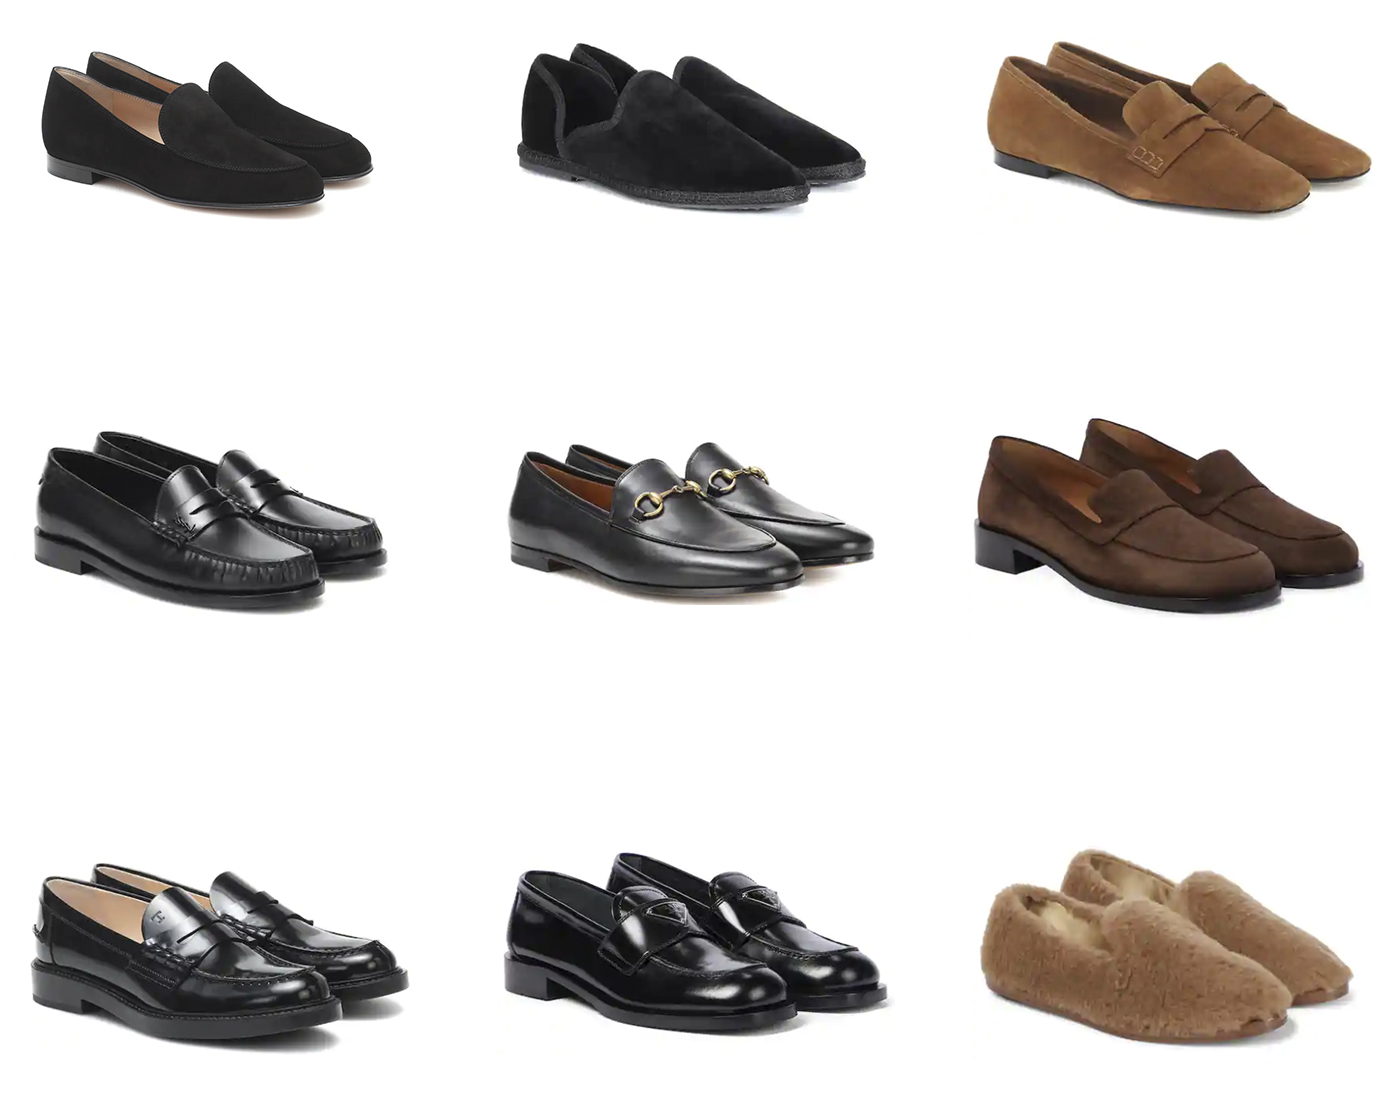 Trini |LOAFERS shoes edit